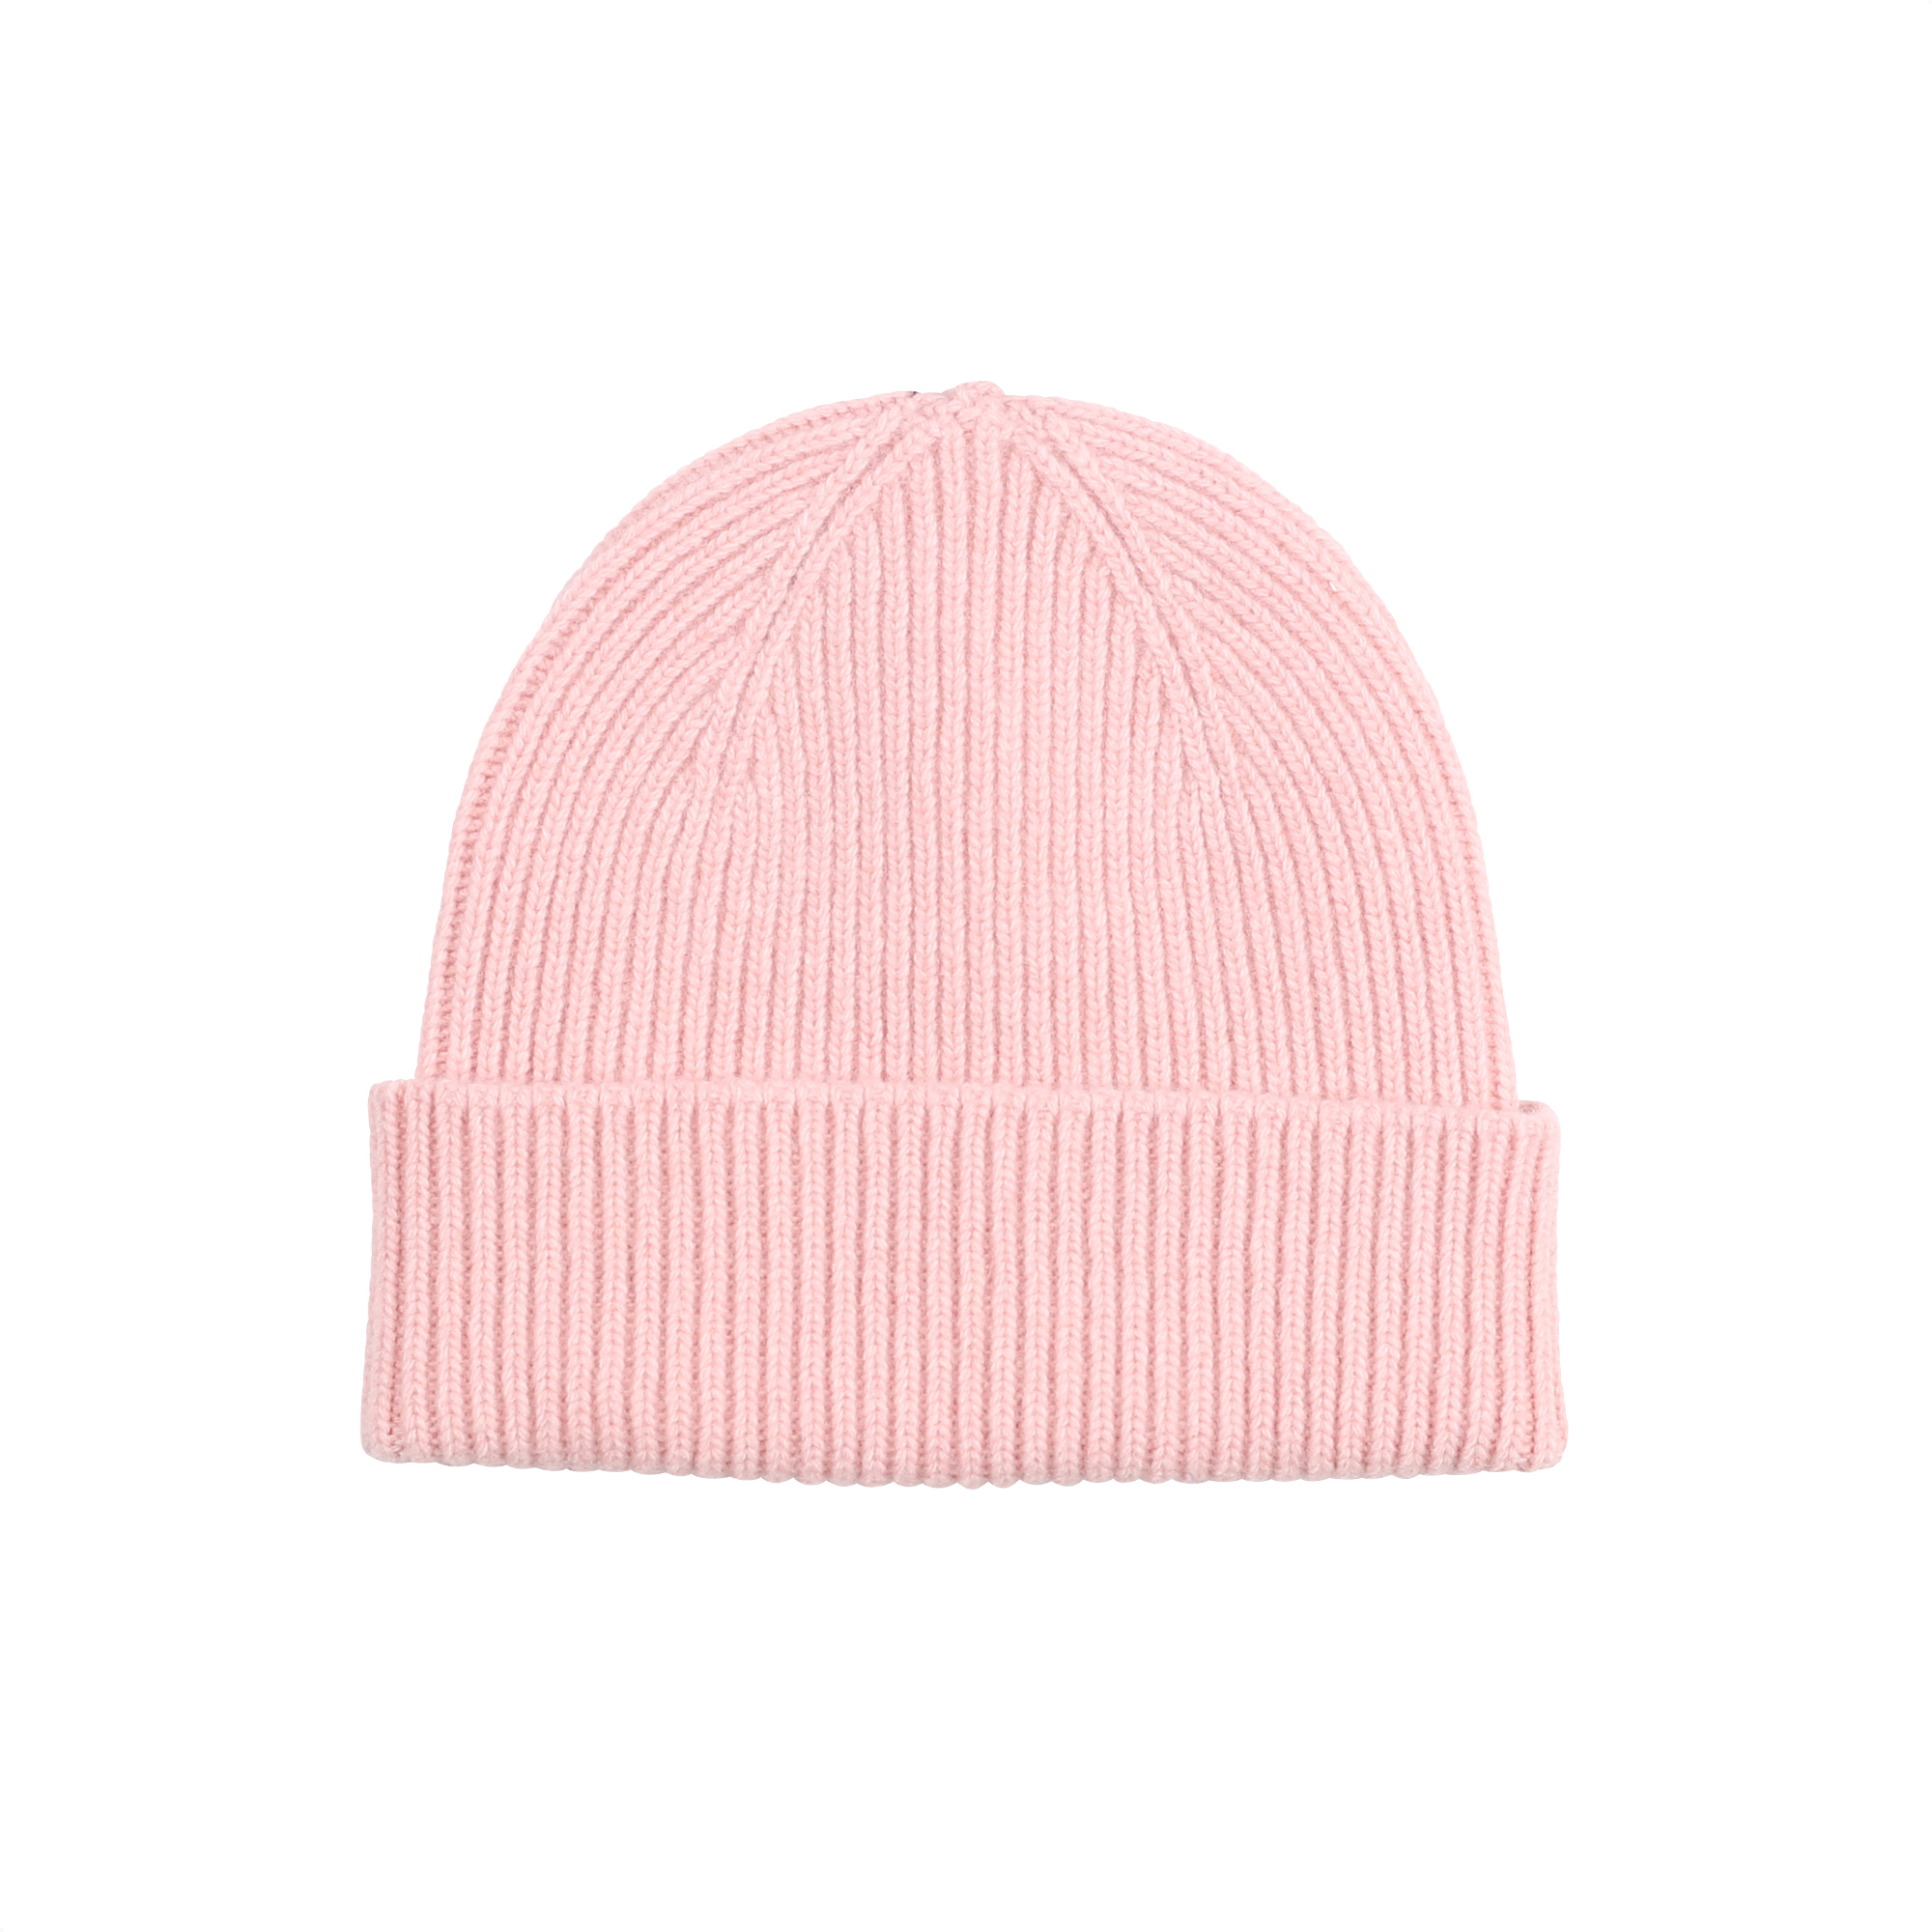 Colorful Standard Merino Wool Beanie